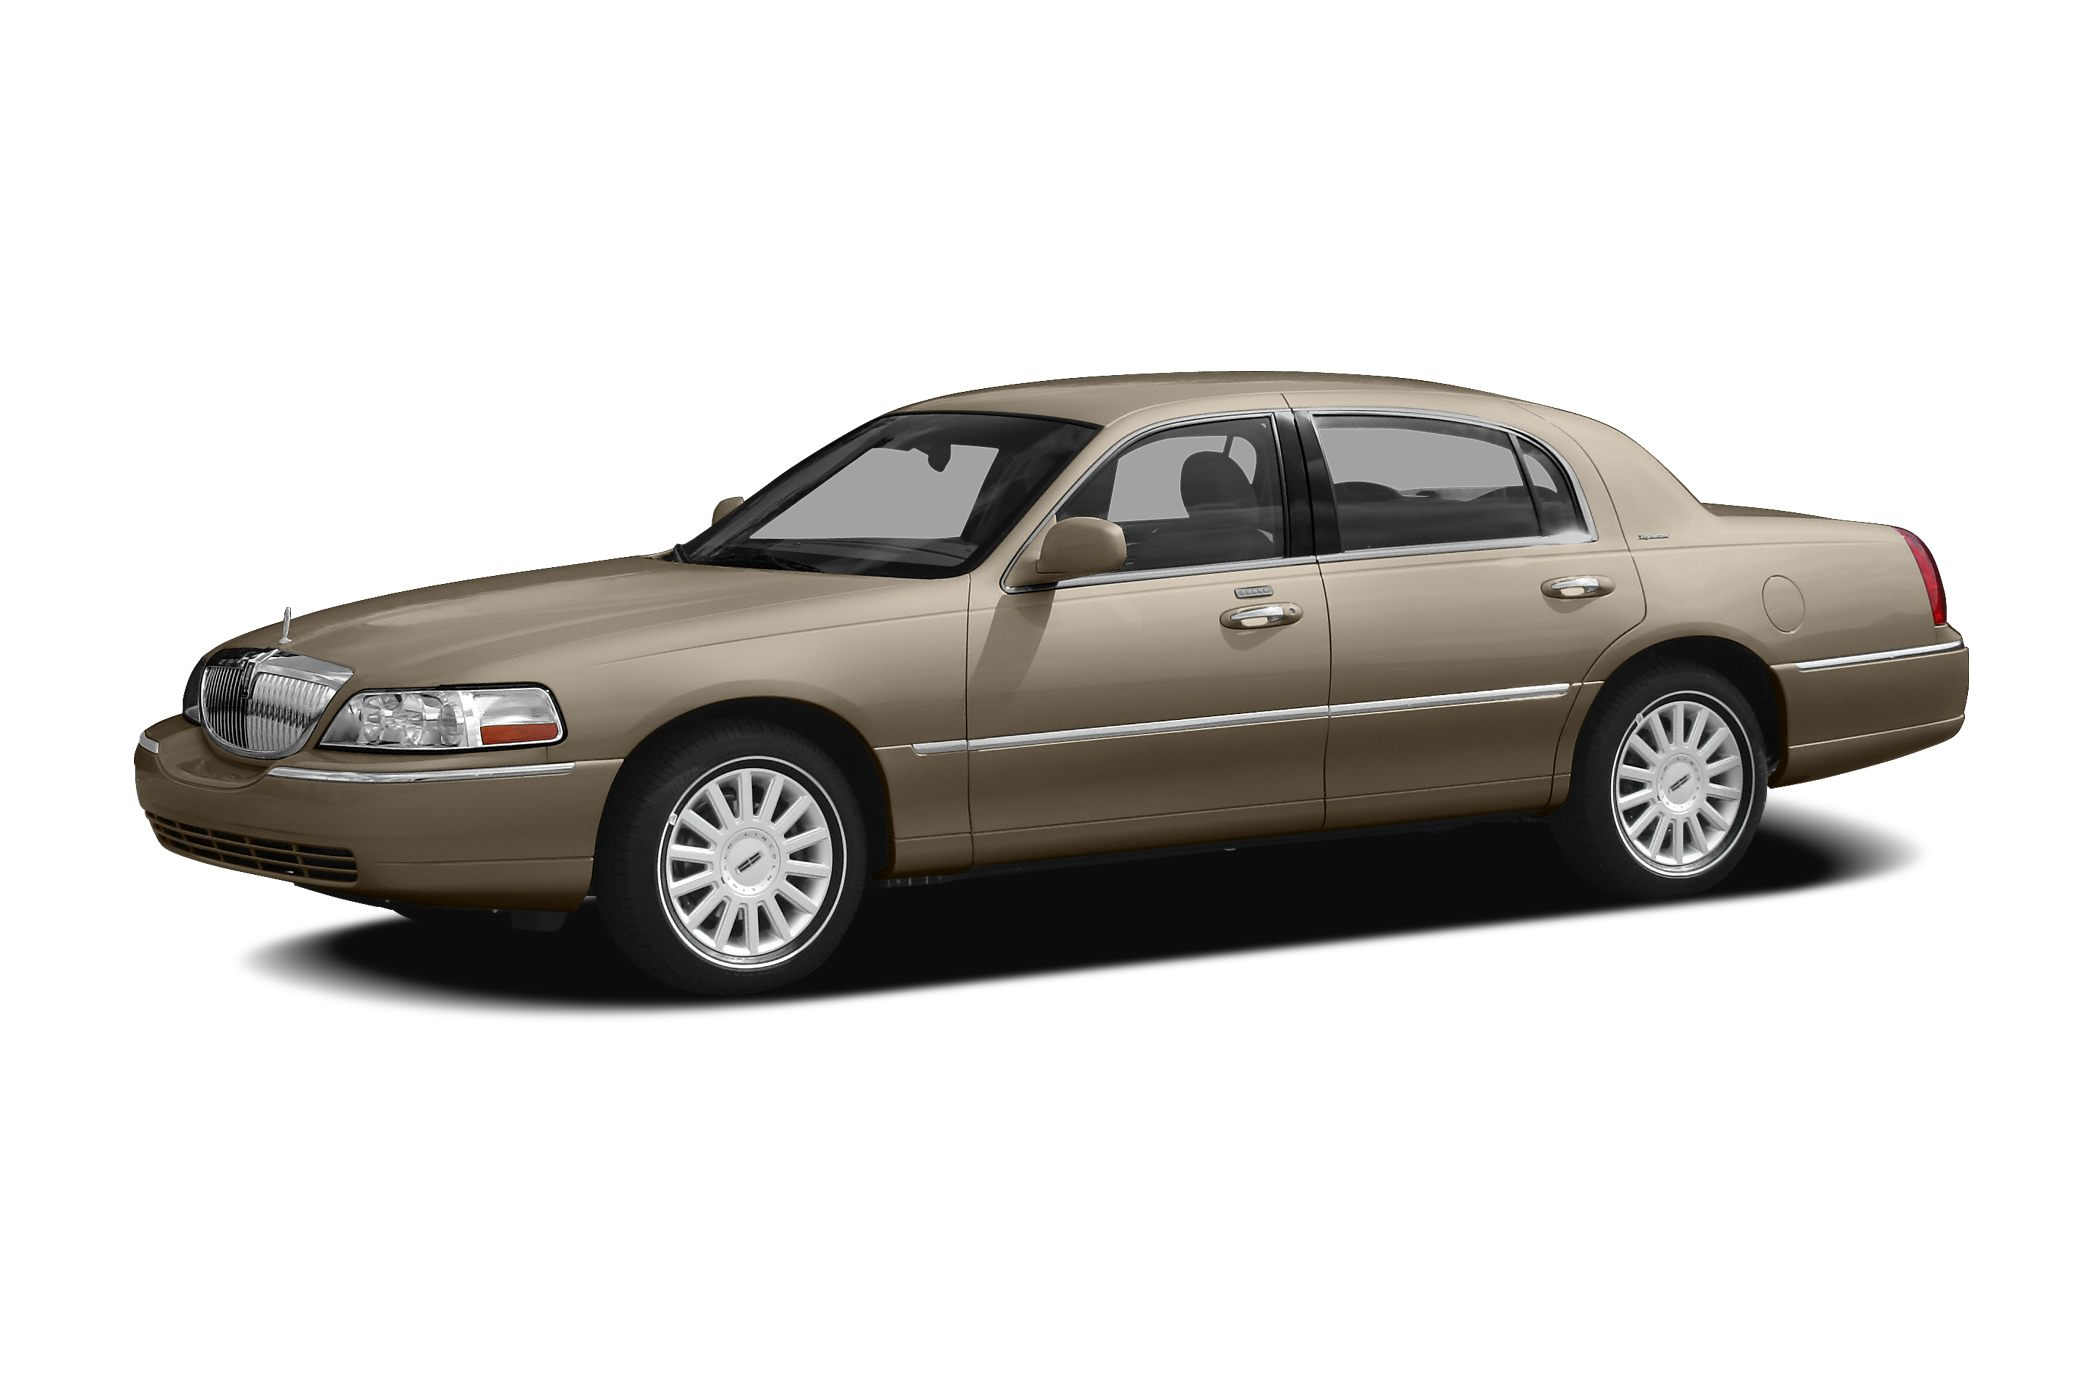 2011 Lincoln Town Car Signature Limited Regal Honda means business Right car Right price Lincol